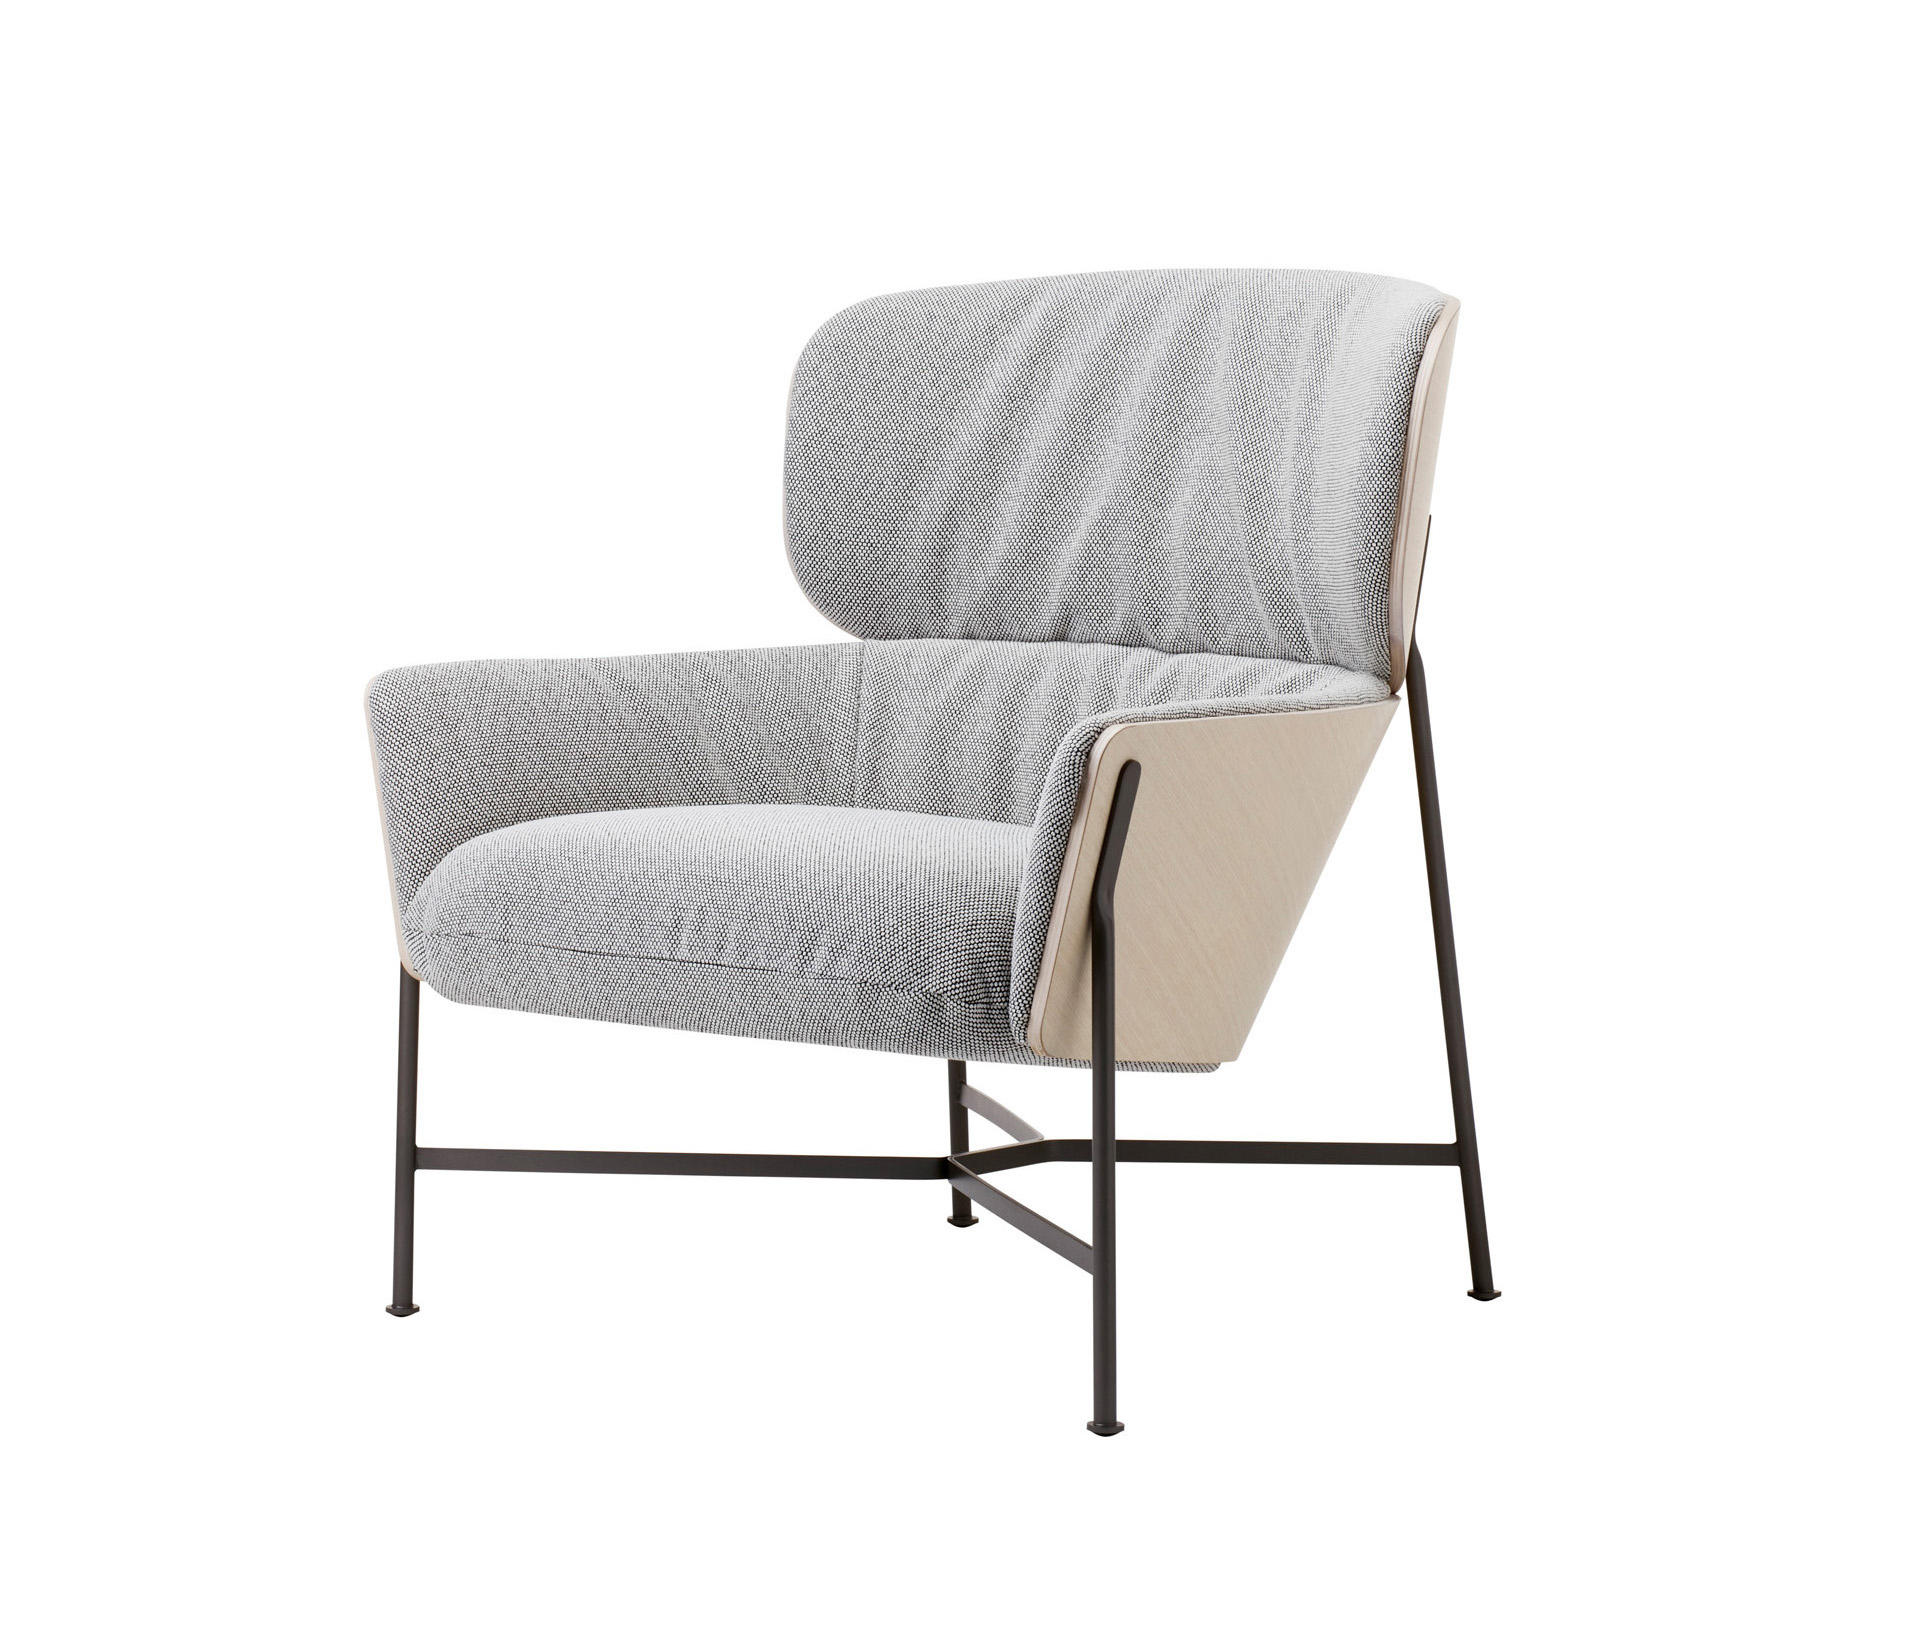 low back lawn chair 9 for writing desk caristo armchair armchairs from sp01 architonic by